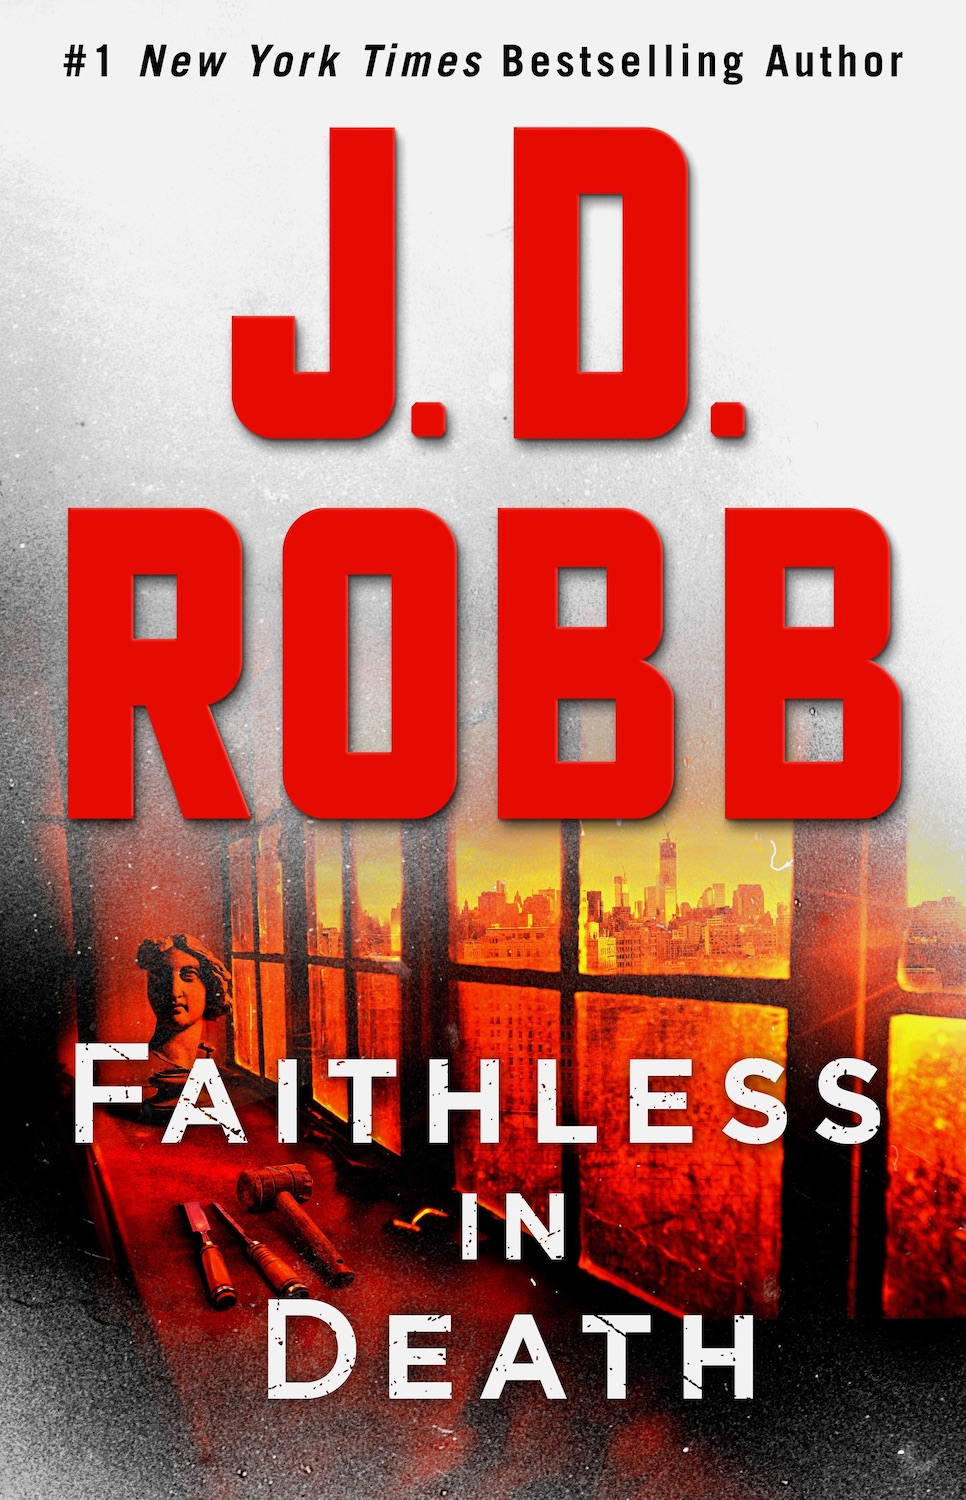 Review: Faithless in Death